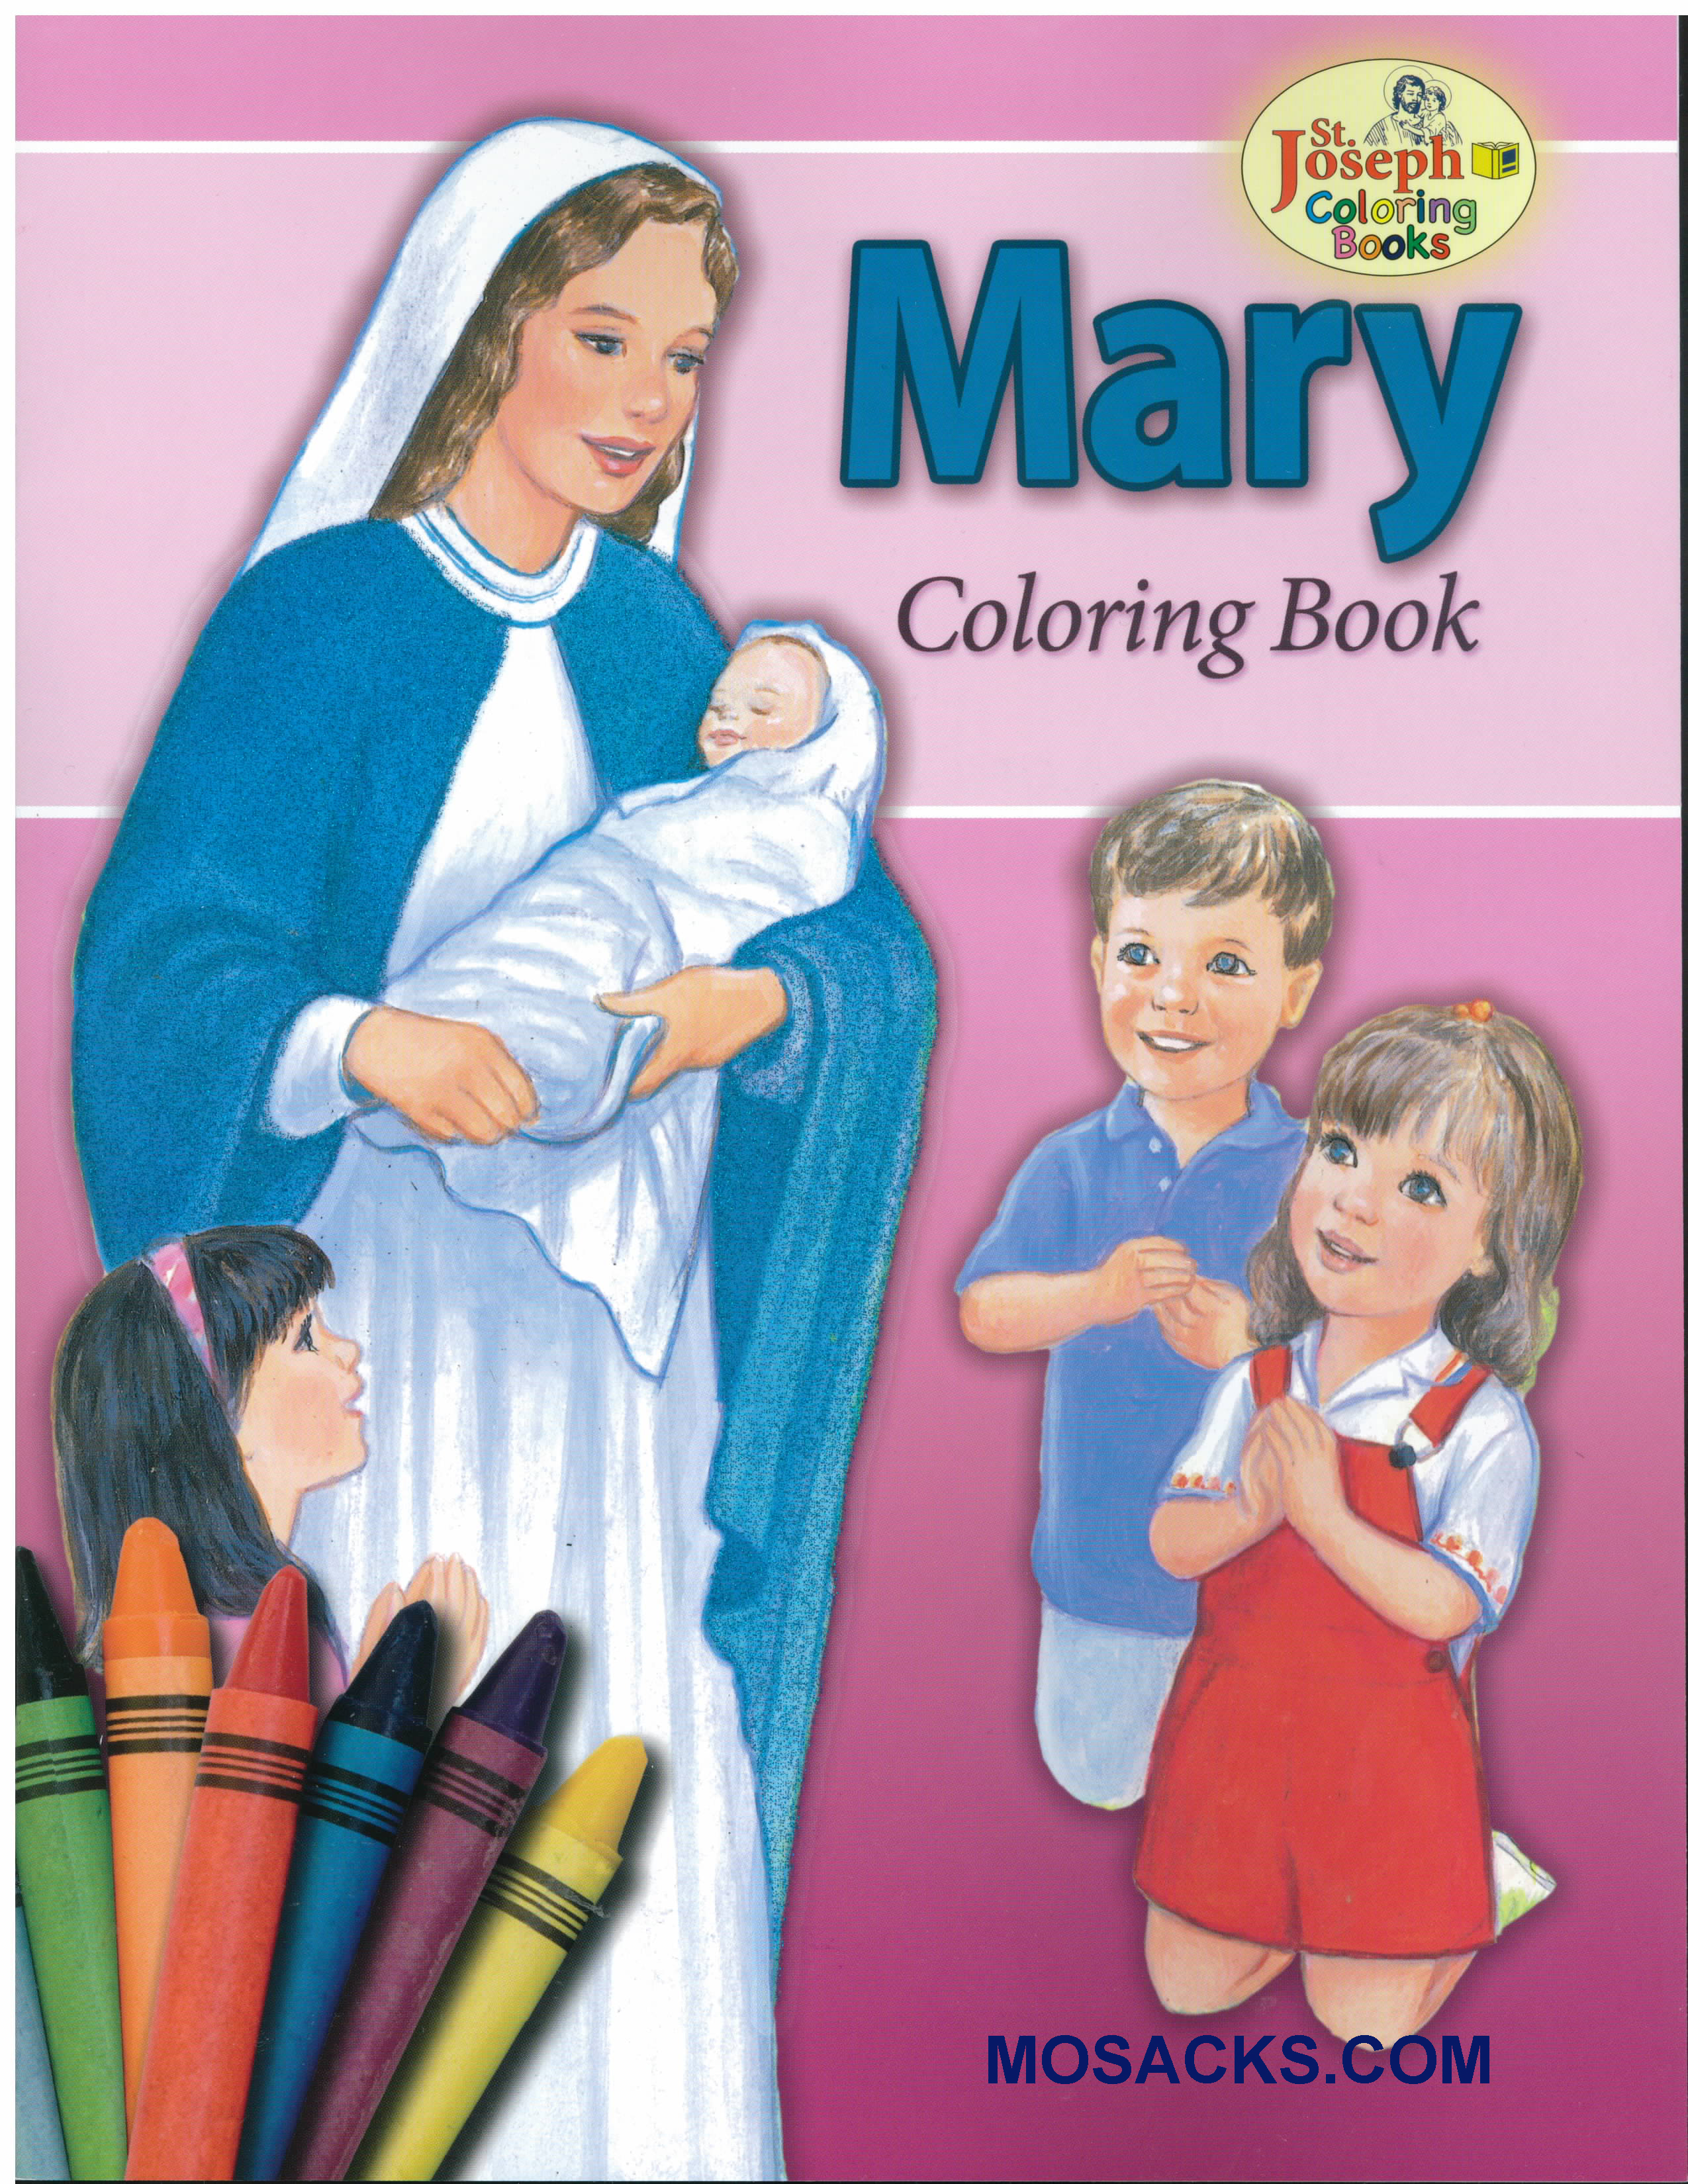 St Joseph Educational Coloring Book Mary-978089942685-3